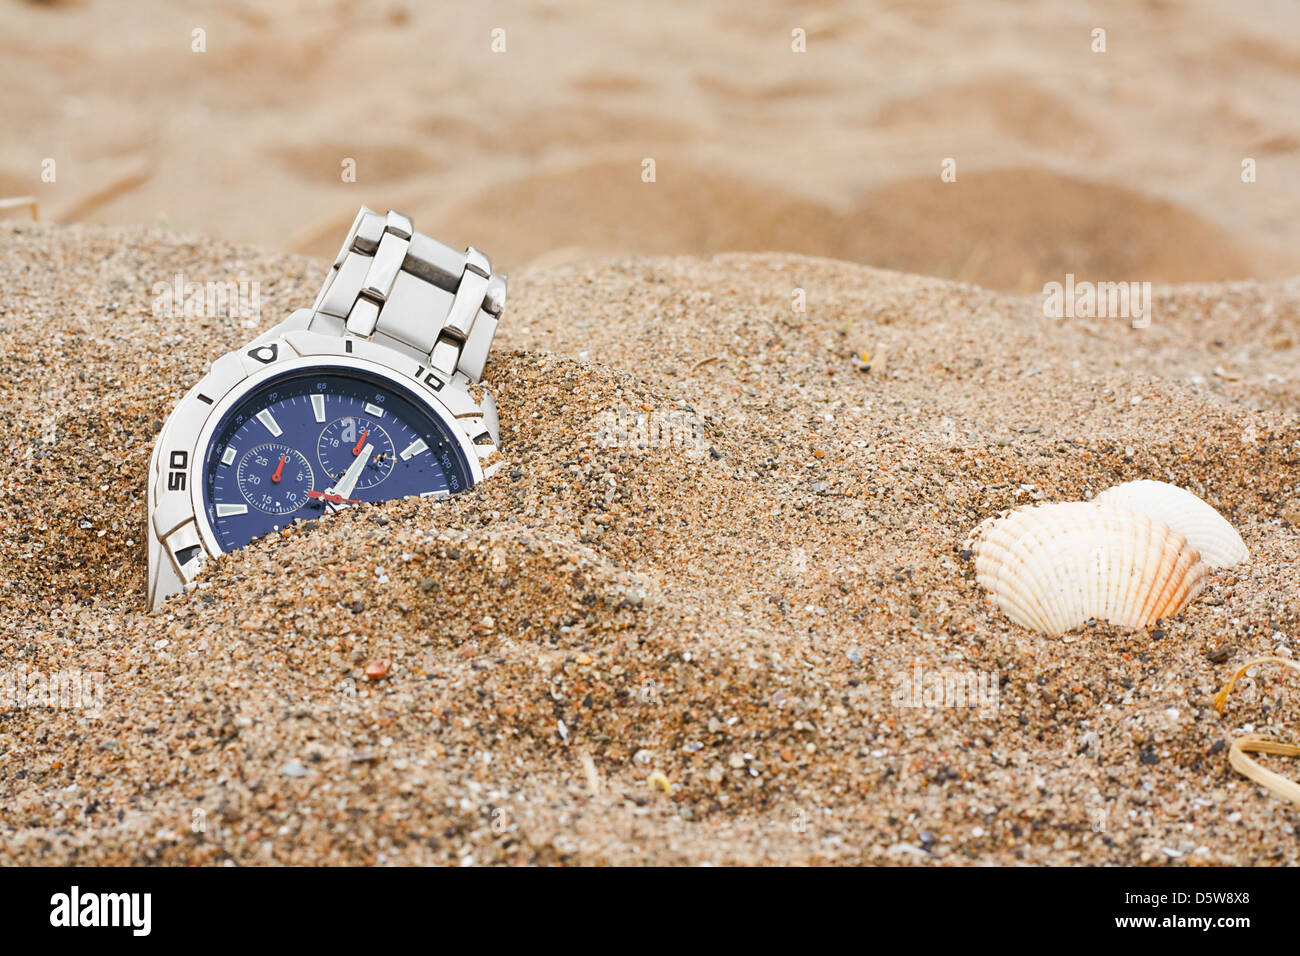 wristwatch left discarded at the beach great for lost property or travel insurance - Stock Image